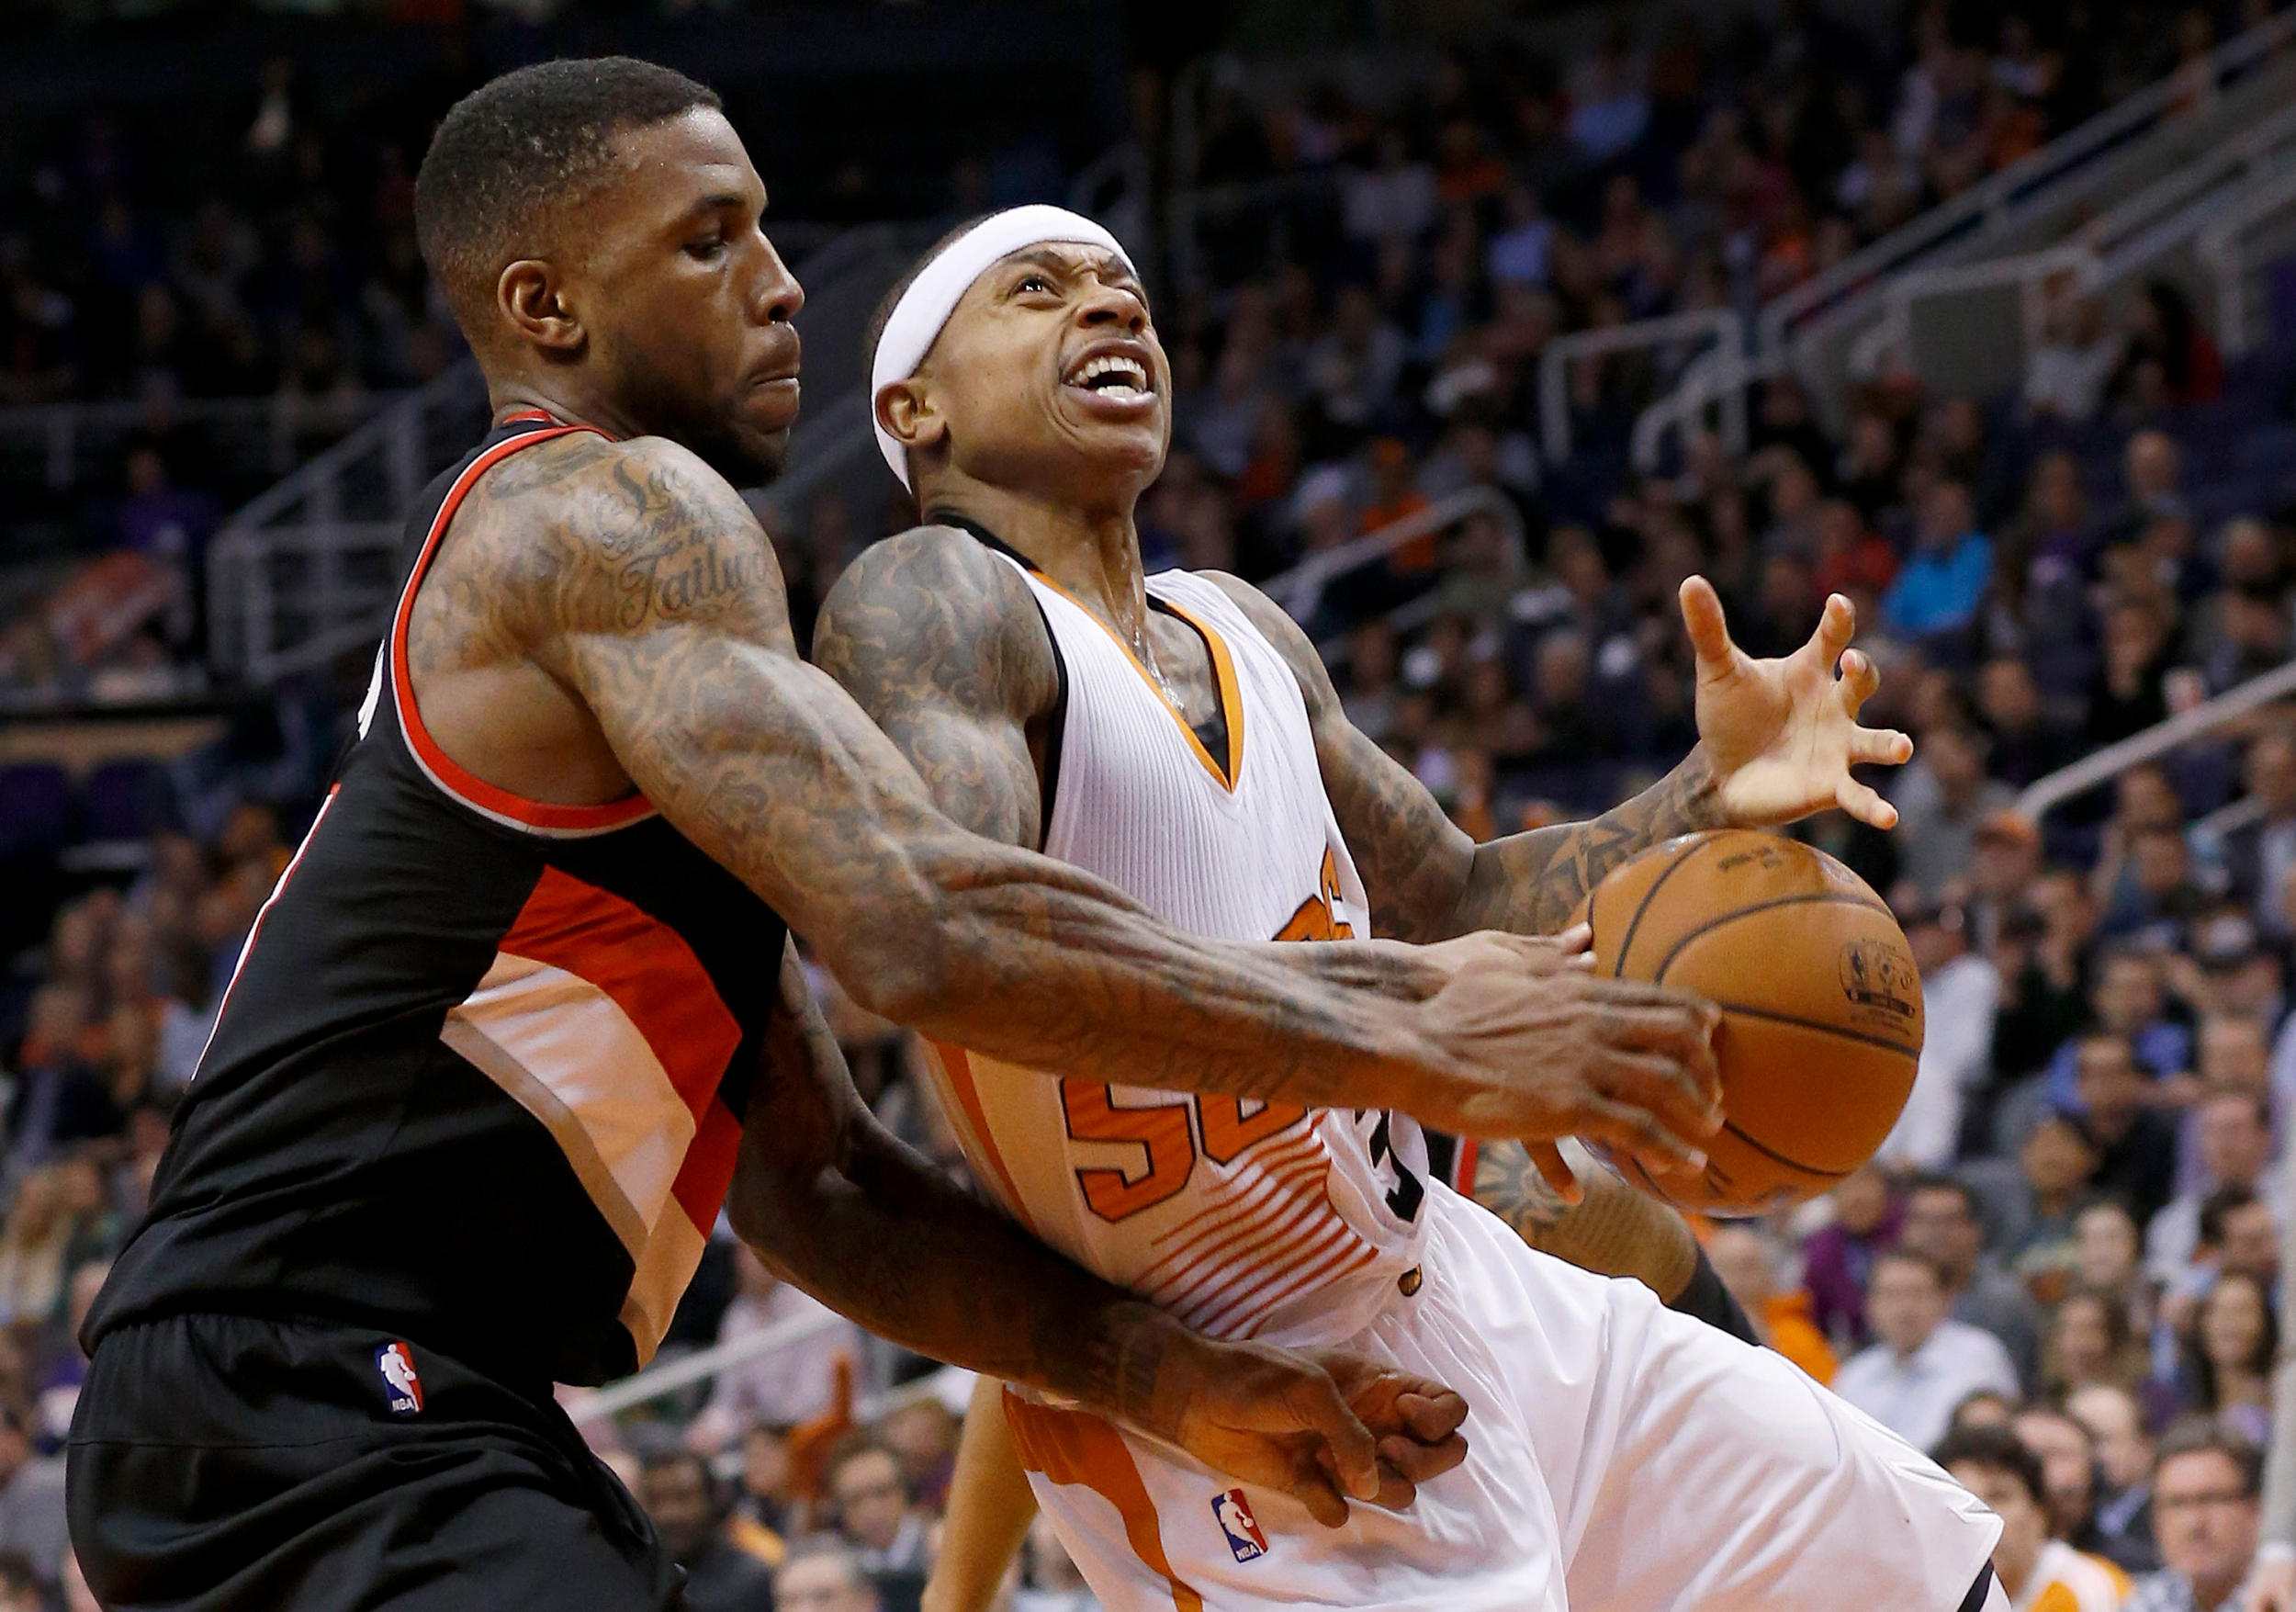 Portland Trail Blazers' Thomas Robinson, left, strips the ball from Phoenix Suns' Isaiah Thomas during the second half of an NBA basketball game Wednesday, Jan. 21, 2015, in Phoenix.